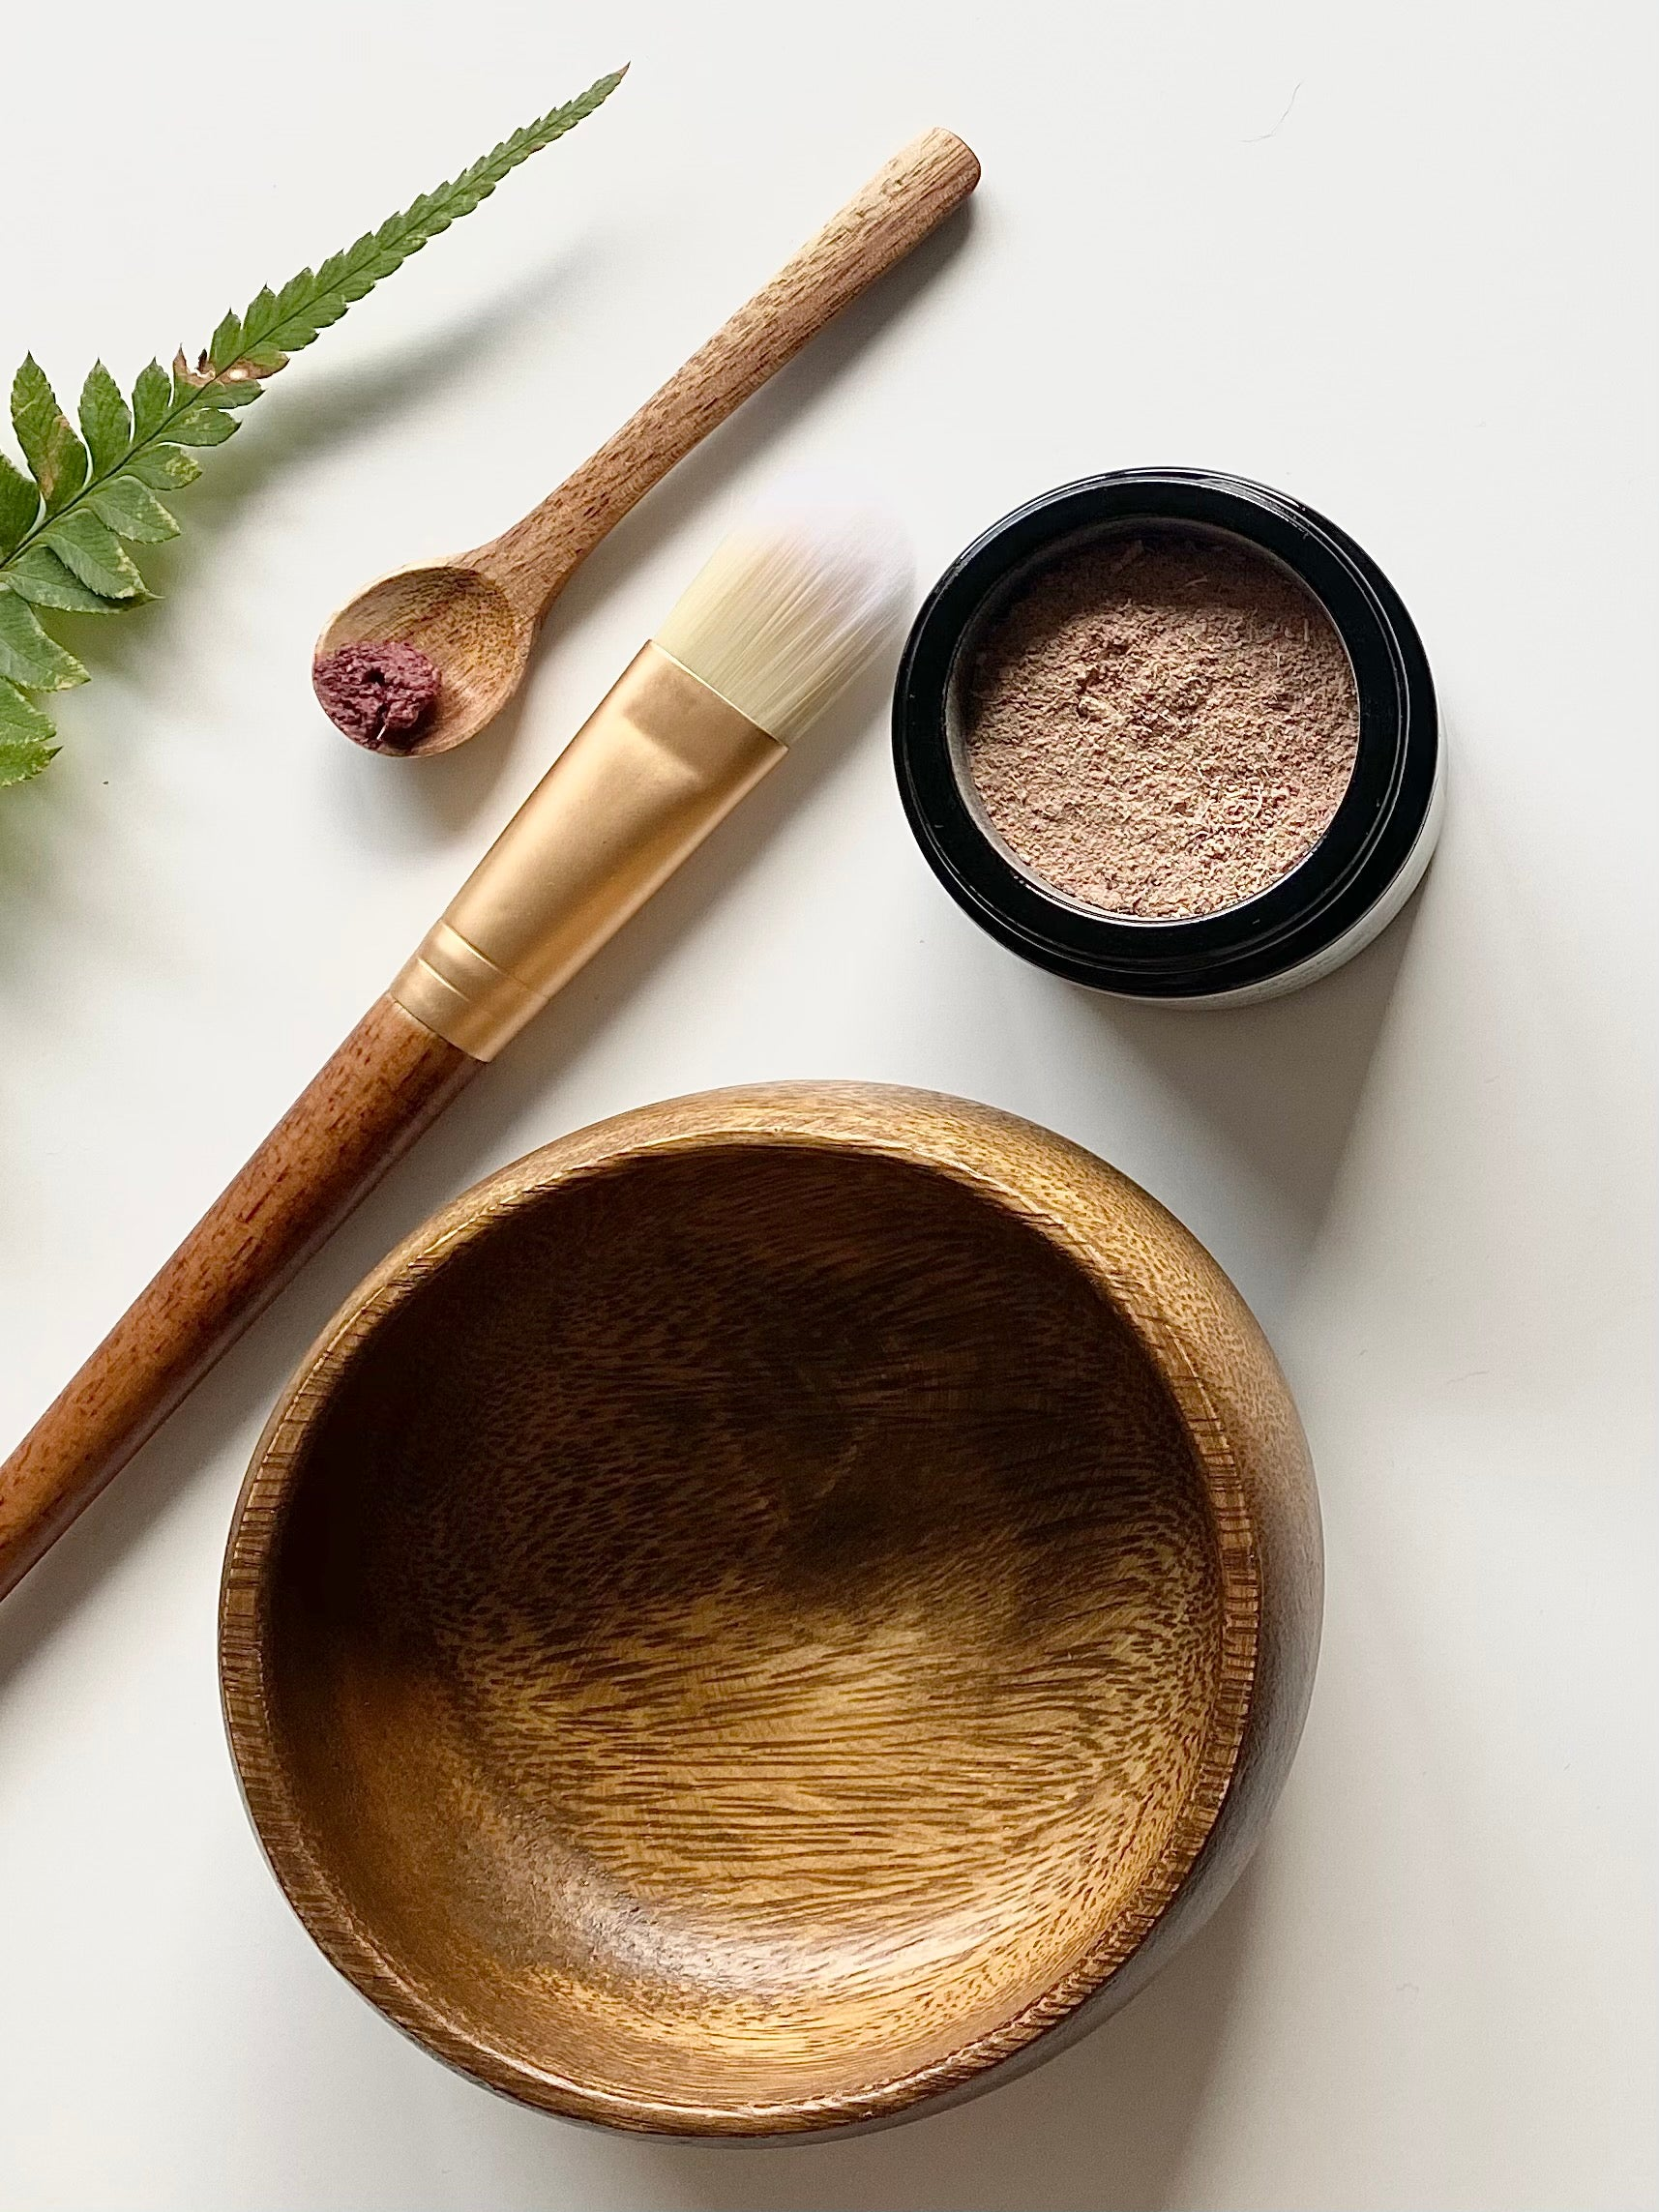 a mask kit with teak wood bowl, spoon and brush